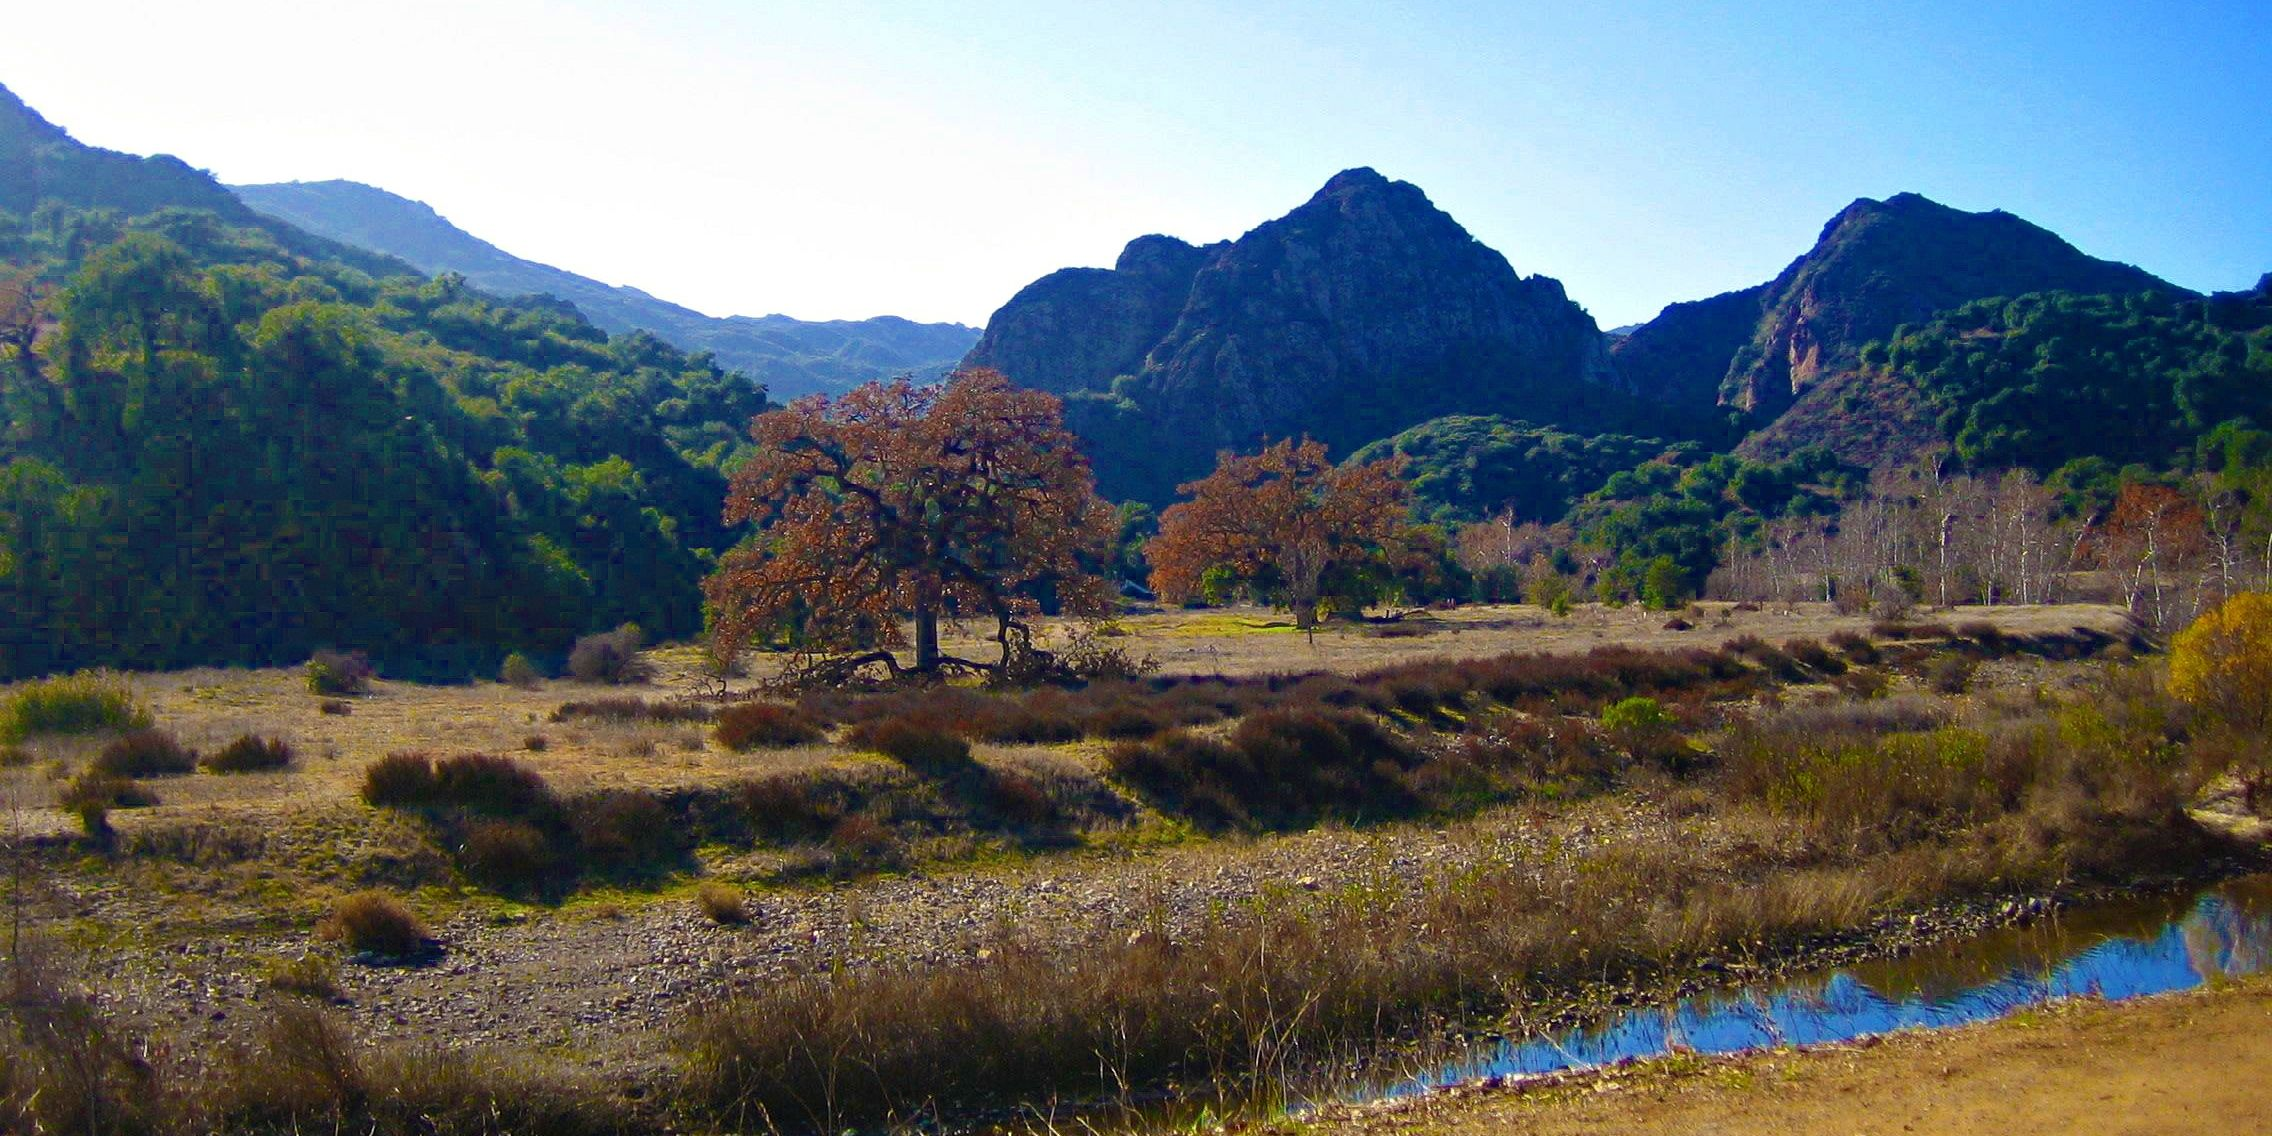 Malibu Creek State Park (photo by Yvonne Condes)